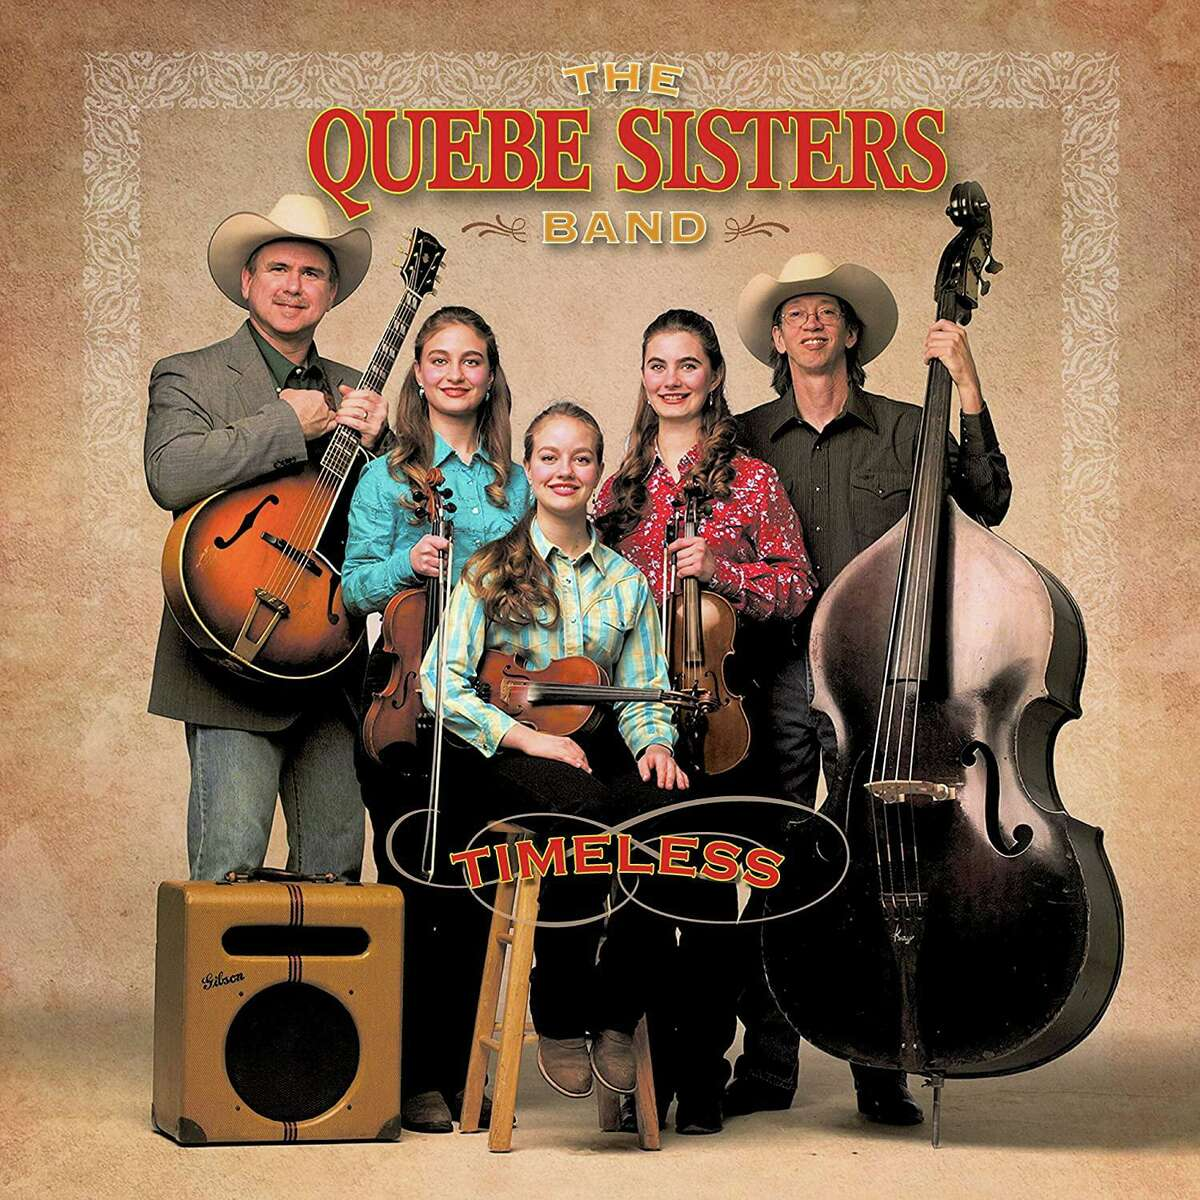 Album cover, The Quebe Sisters Band, Timeless.